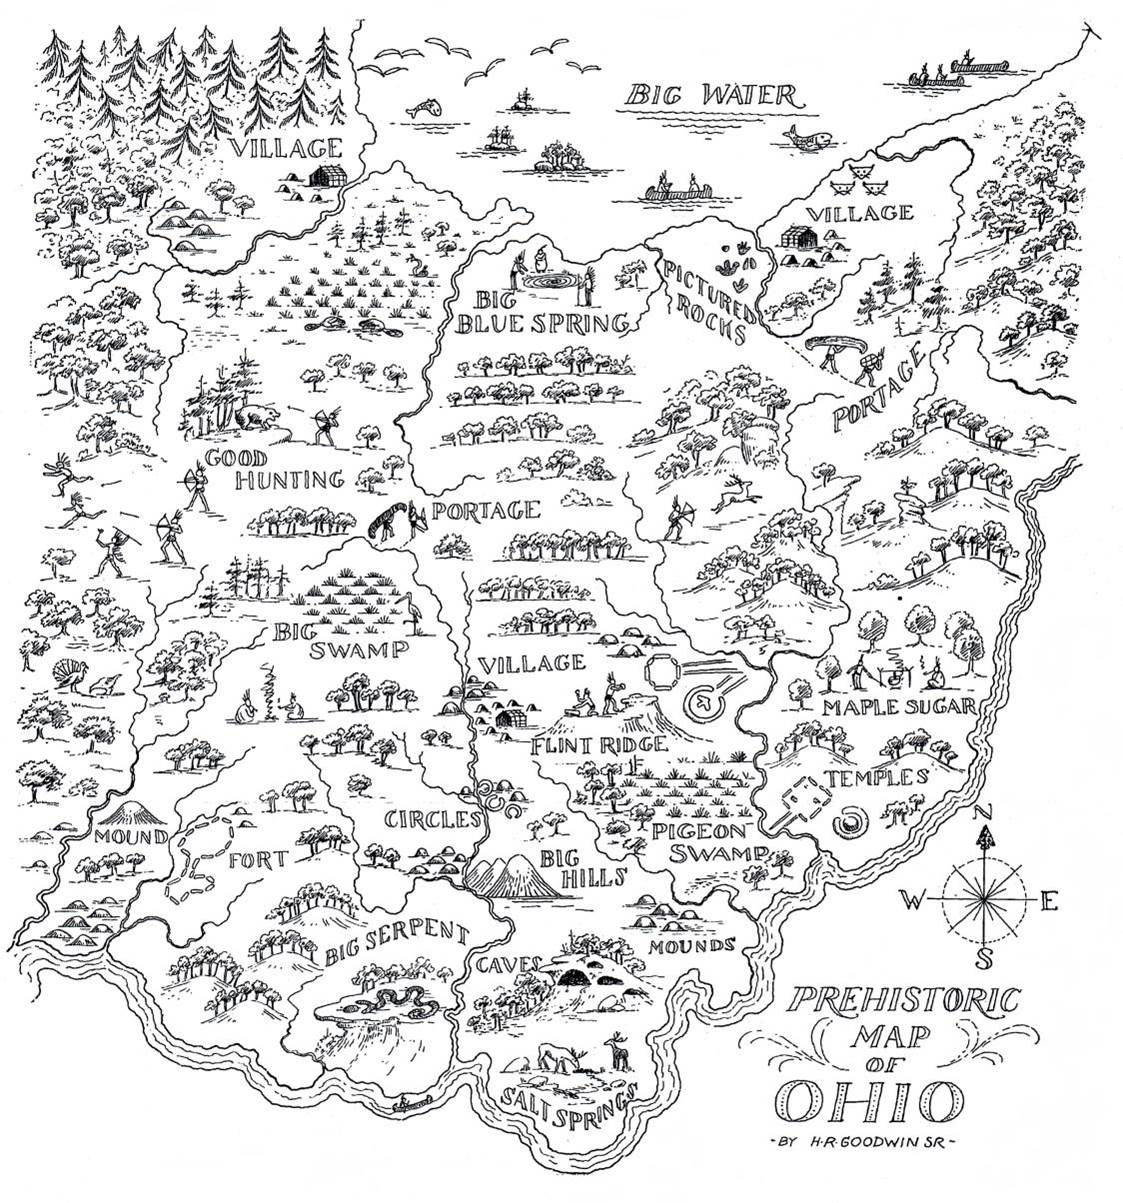 Prehistoric map of ohio ohio history connection publicscrutiny Image collections